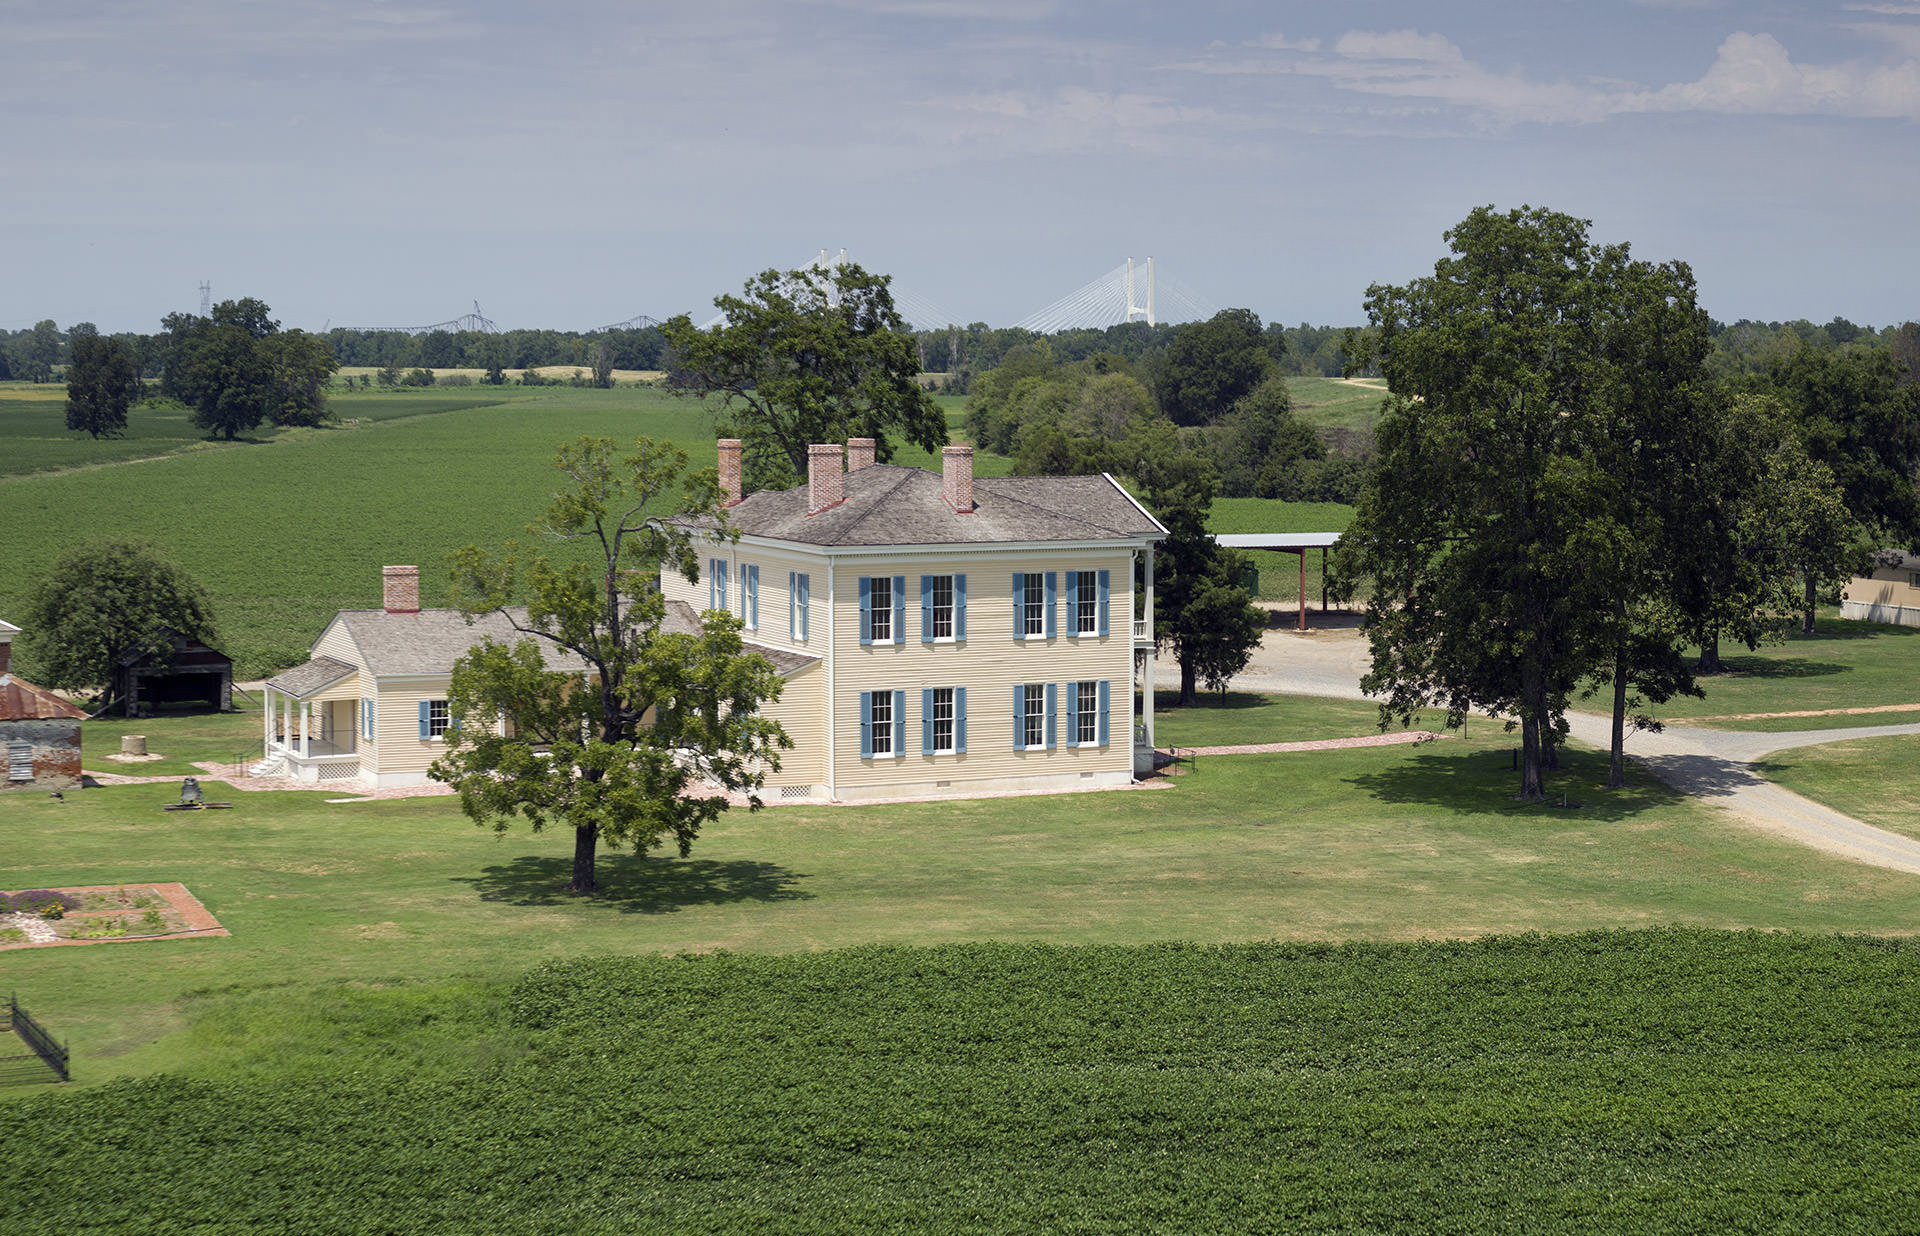 Lakeport Plantation near Lake Village is the only remaining Arkansas antebellum plantation home on the Mississippi River.  Near the top of this image, you can see the Greenville Bridge which opened in 2010.